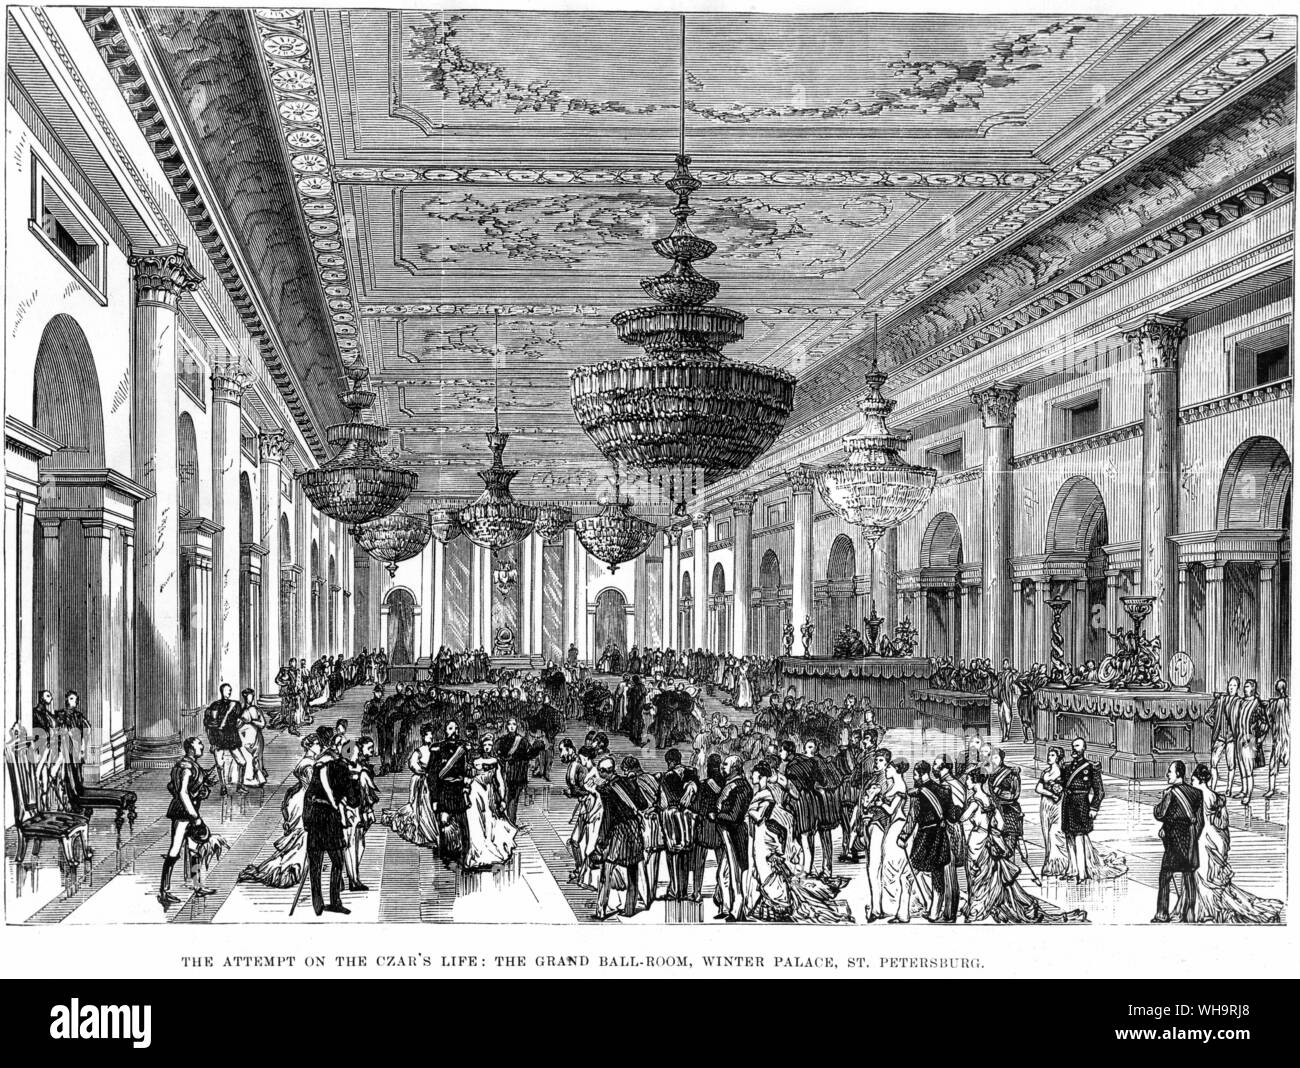 The attempt on the Tsar's life. The Grand ballroom, Winter Palace, St. Petersburg. February 1880. ILN 28.2.1880 Stock Photo